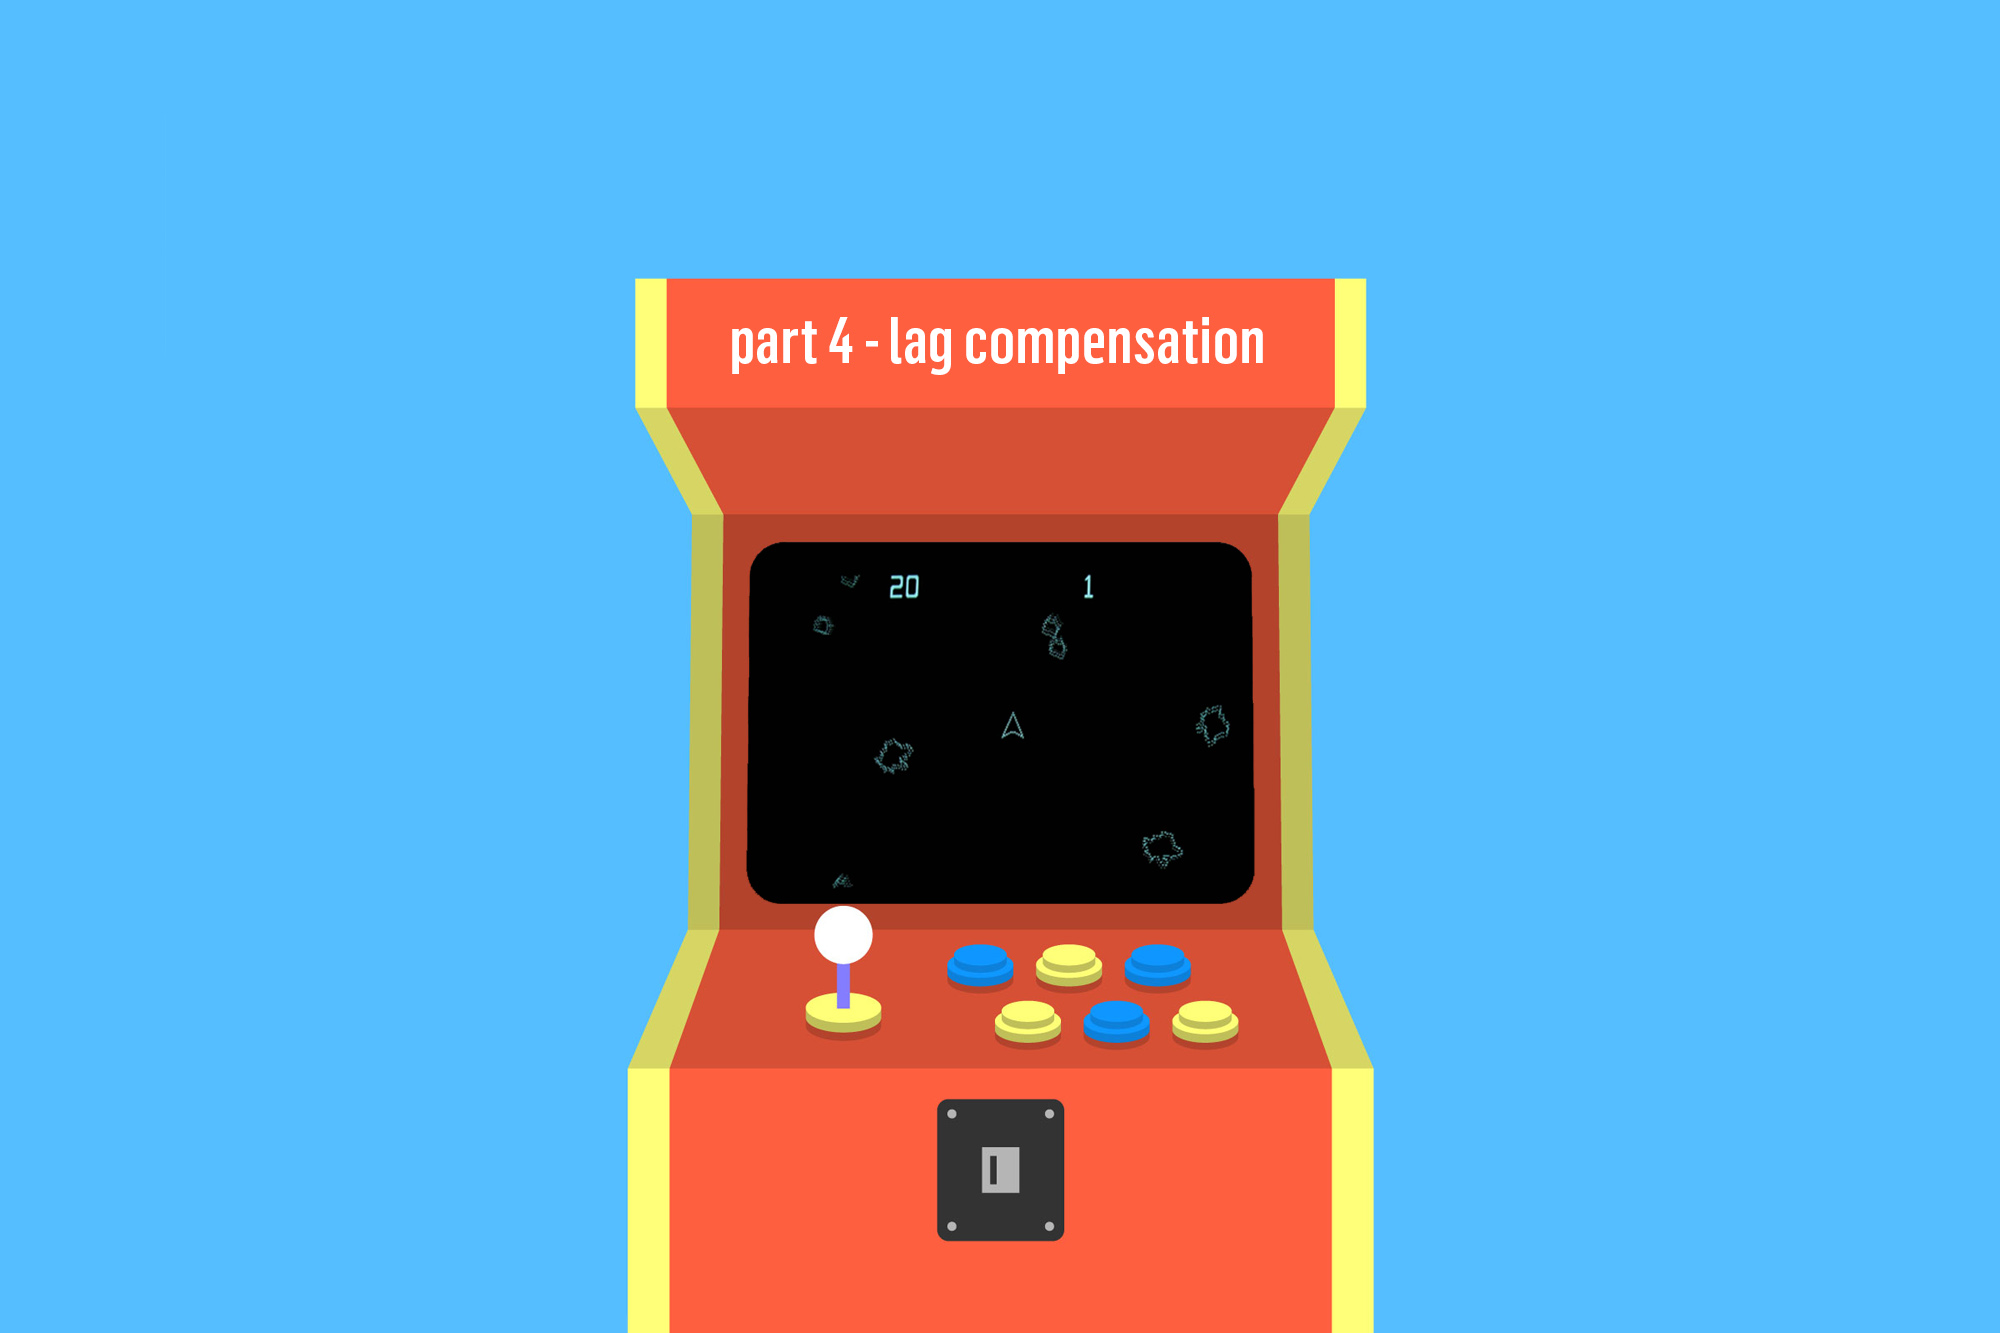 How to lag compensate java/libgdx game